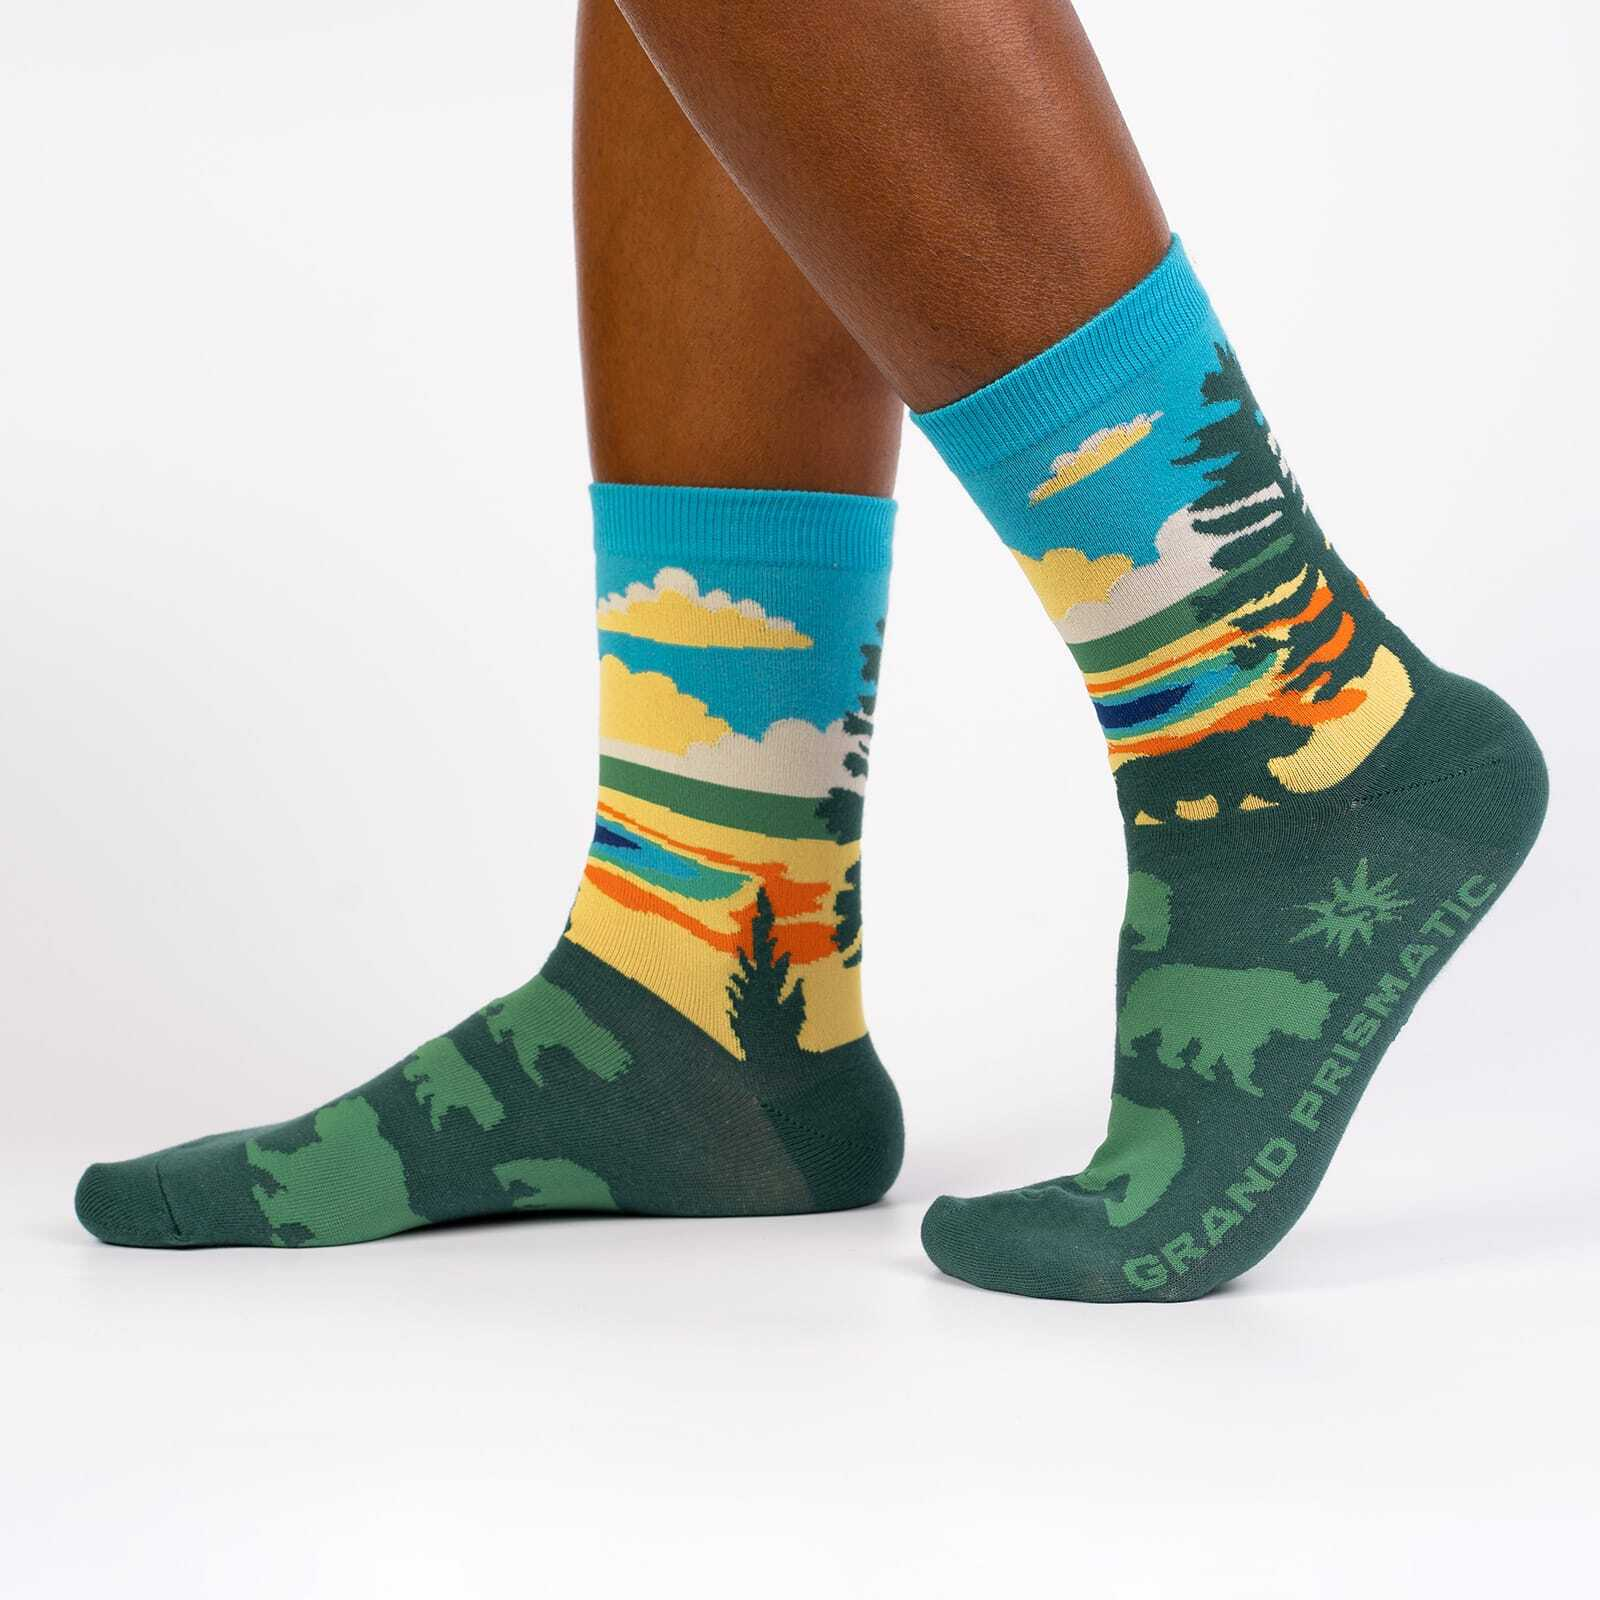 Grand Prismatic - Road Trip Travel Crew Socks Green - Women's in Green